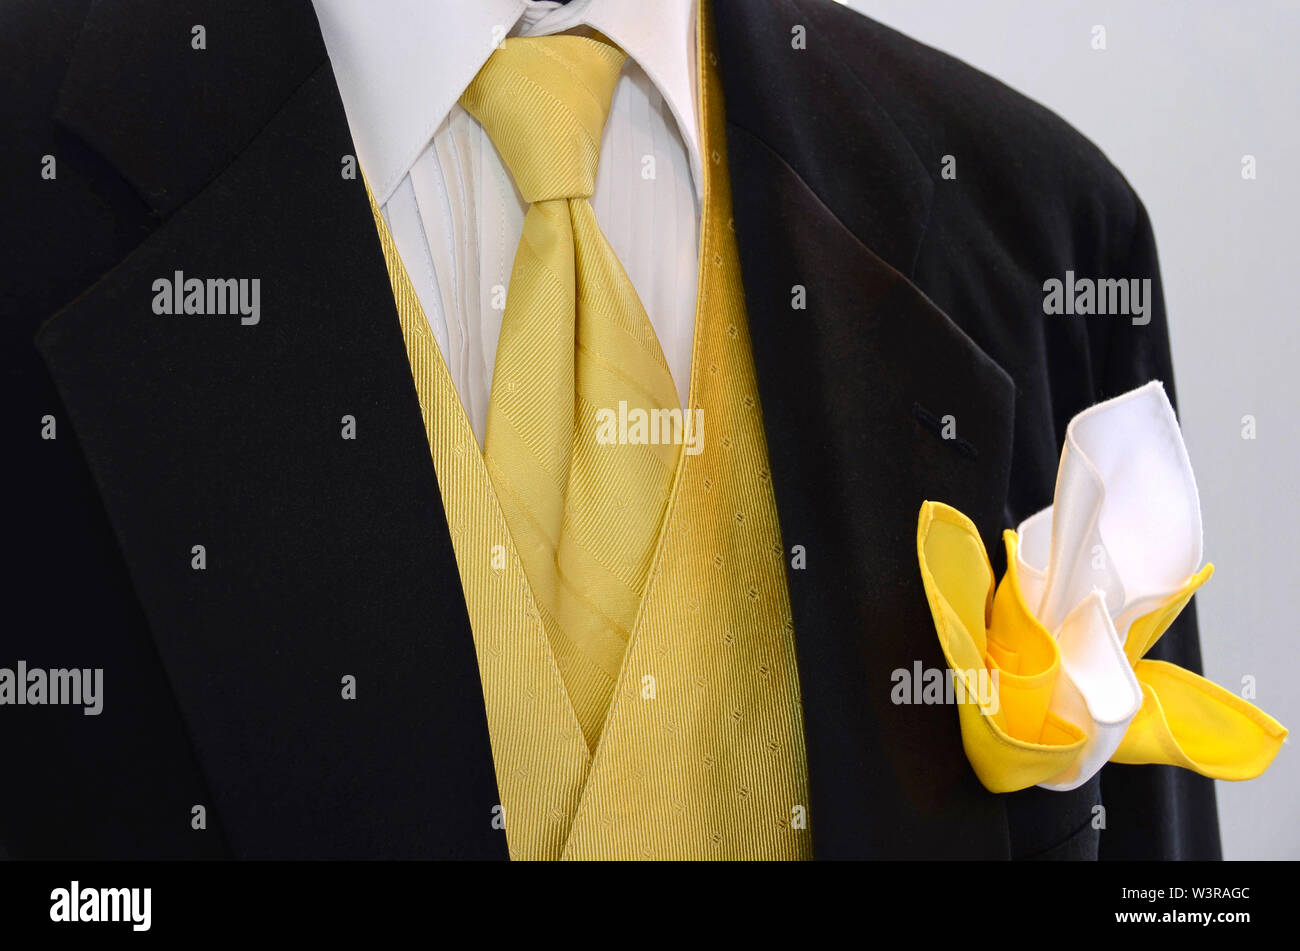 Yellow tie and vest accenting a black tuxedo with boutonniere - Stock Image